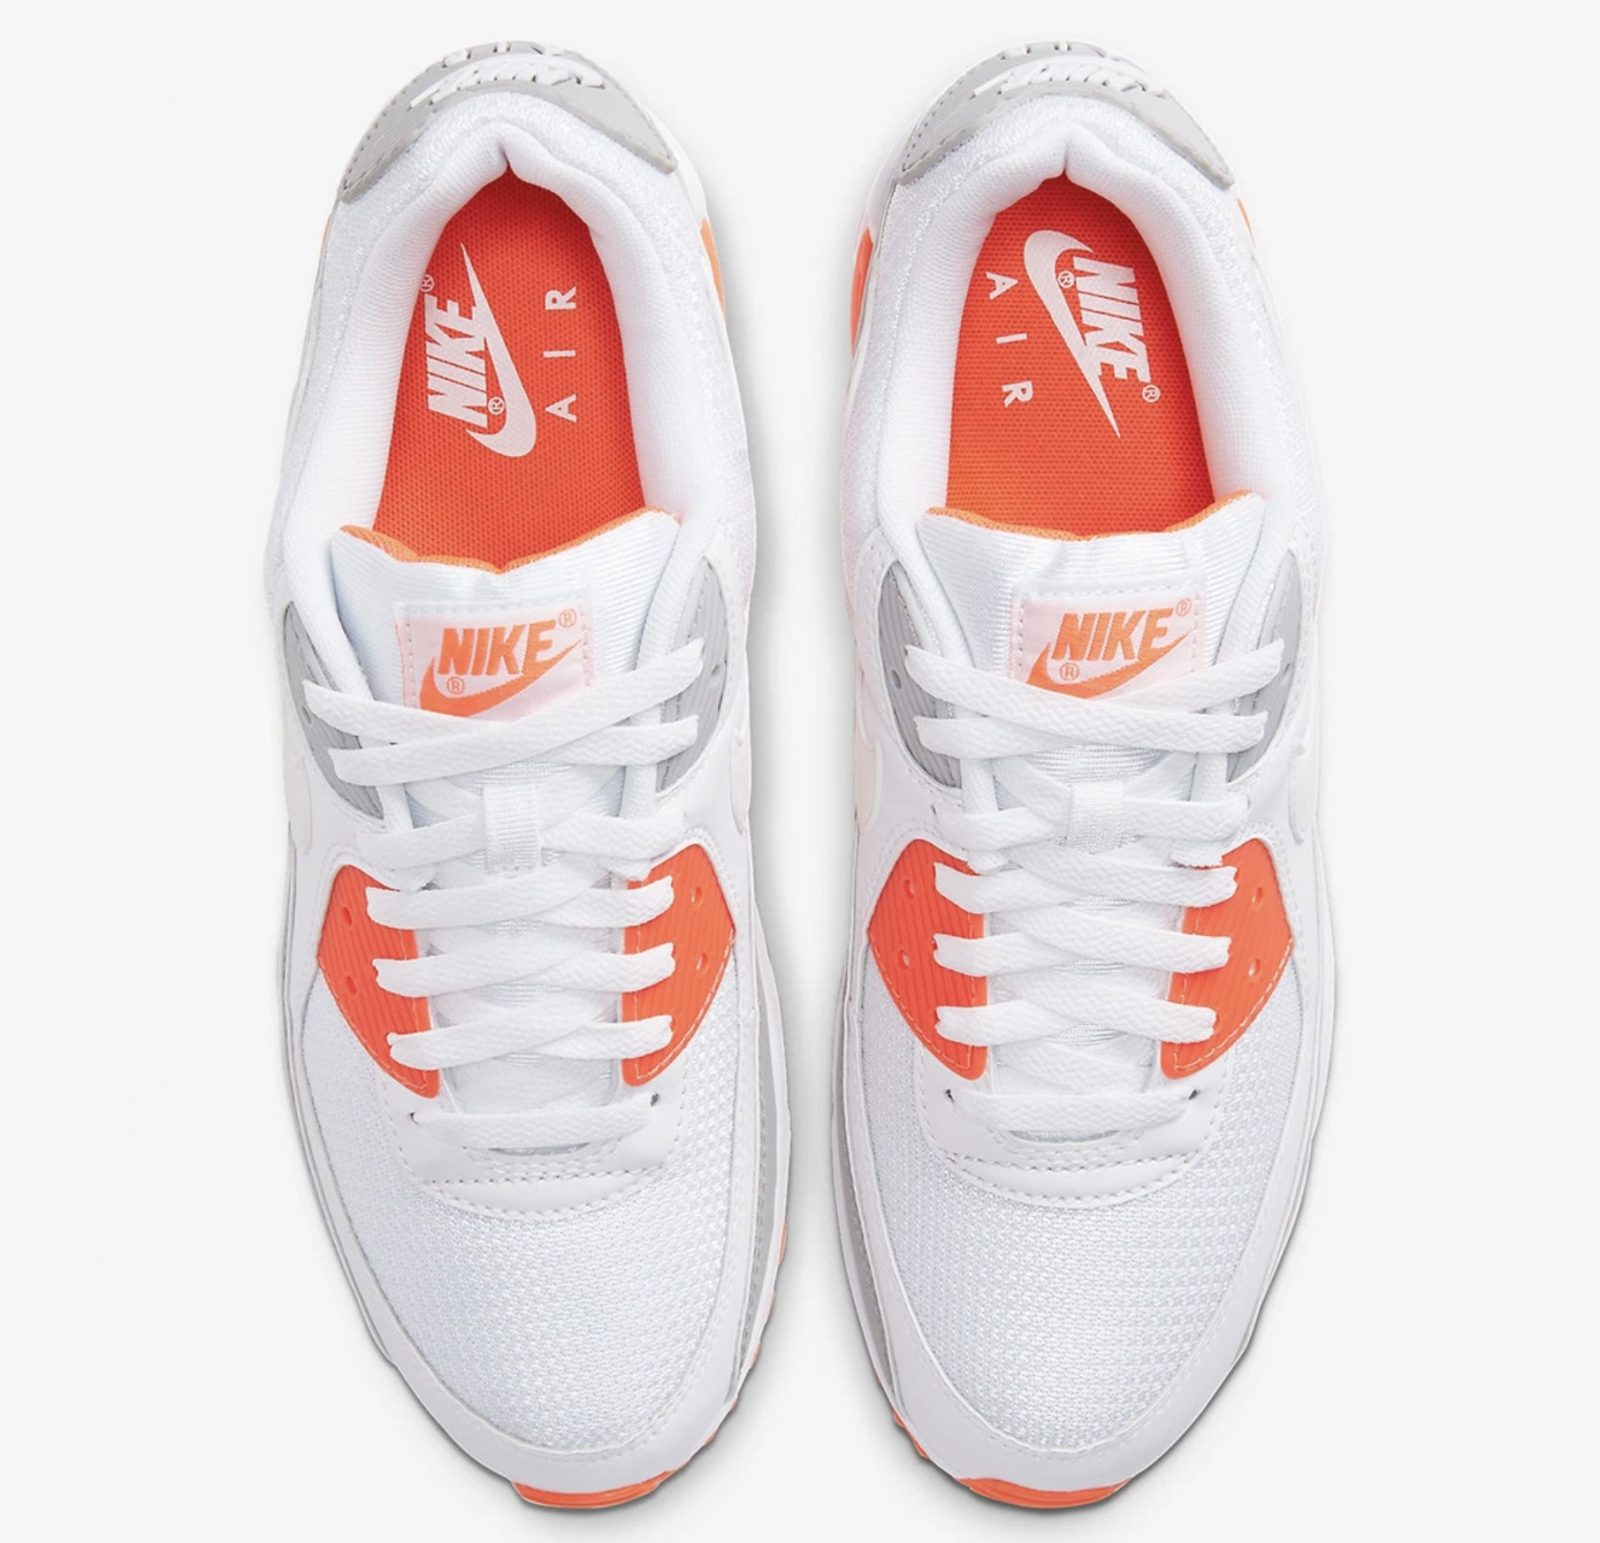 nike-air-max-90-CT4352-103-5 laces